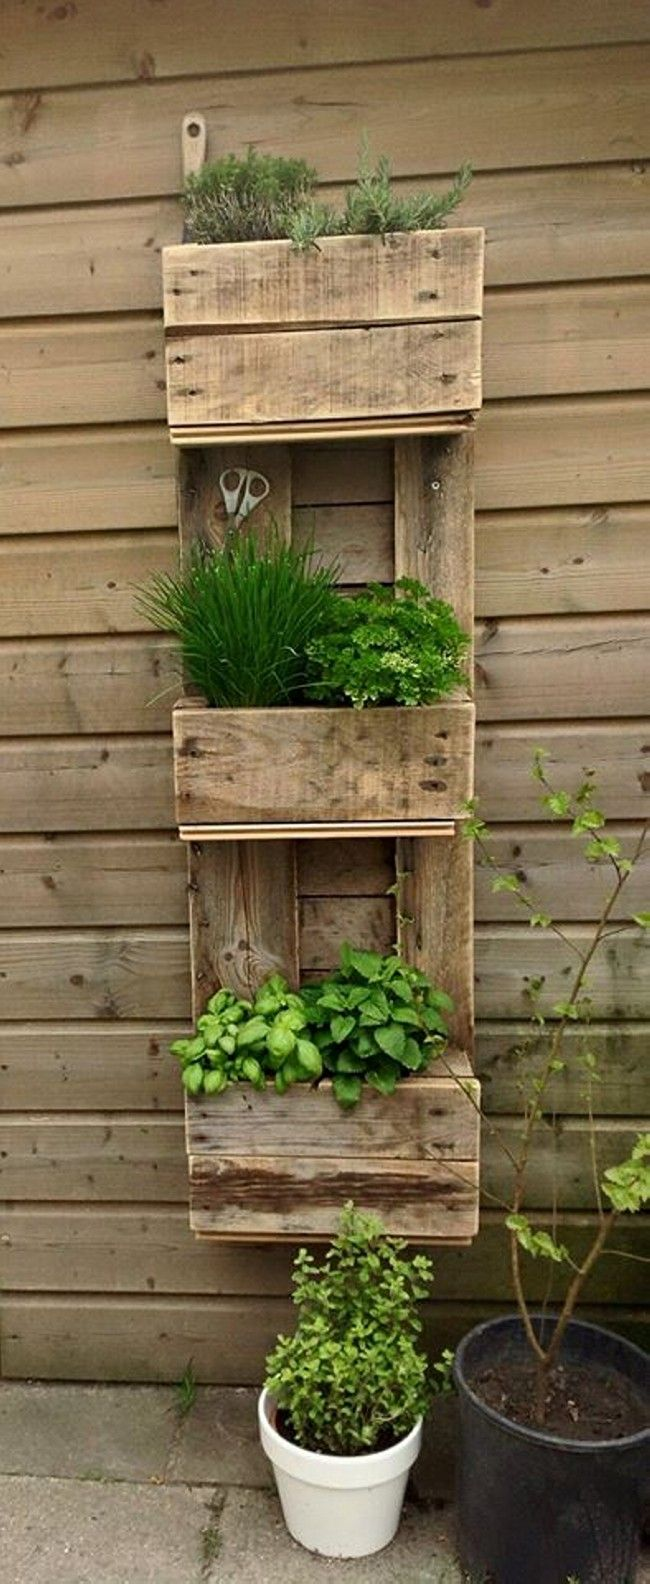 Home Decor Ideas With Wood Pallet    Create A Wall Hung Pallet Herb Garden  To Keep Fresh Herbs Close By.